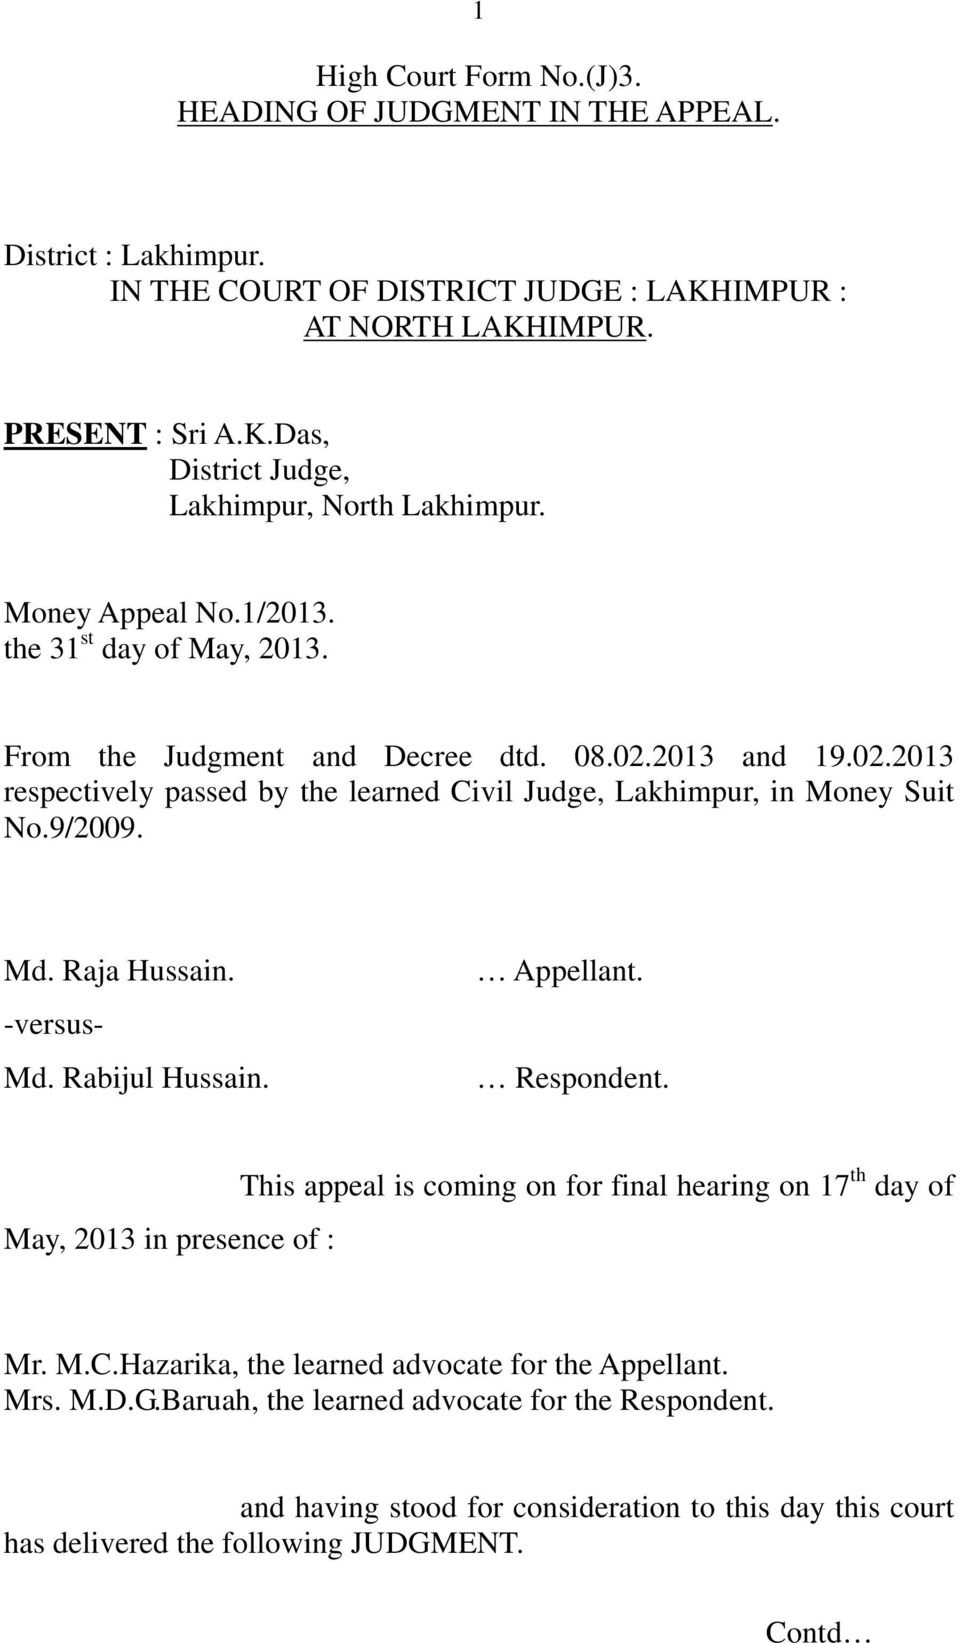 Md. Raja Hussain. -versus- Md. Rabijul Hussain. Appellant. Respondent. May, 2013 in presence of : This appeal is coming on for final hearing on 17 th day of Mr. M.C.